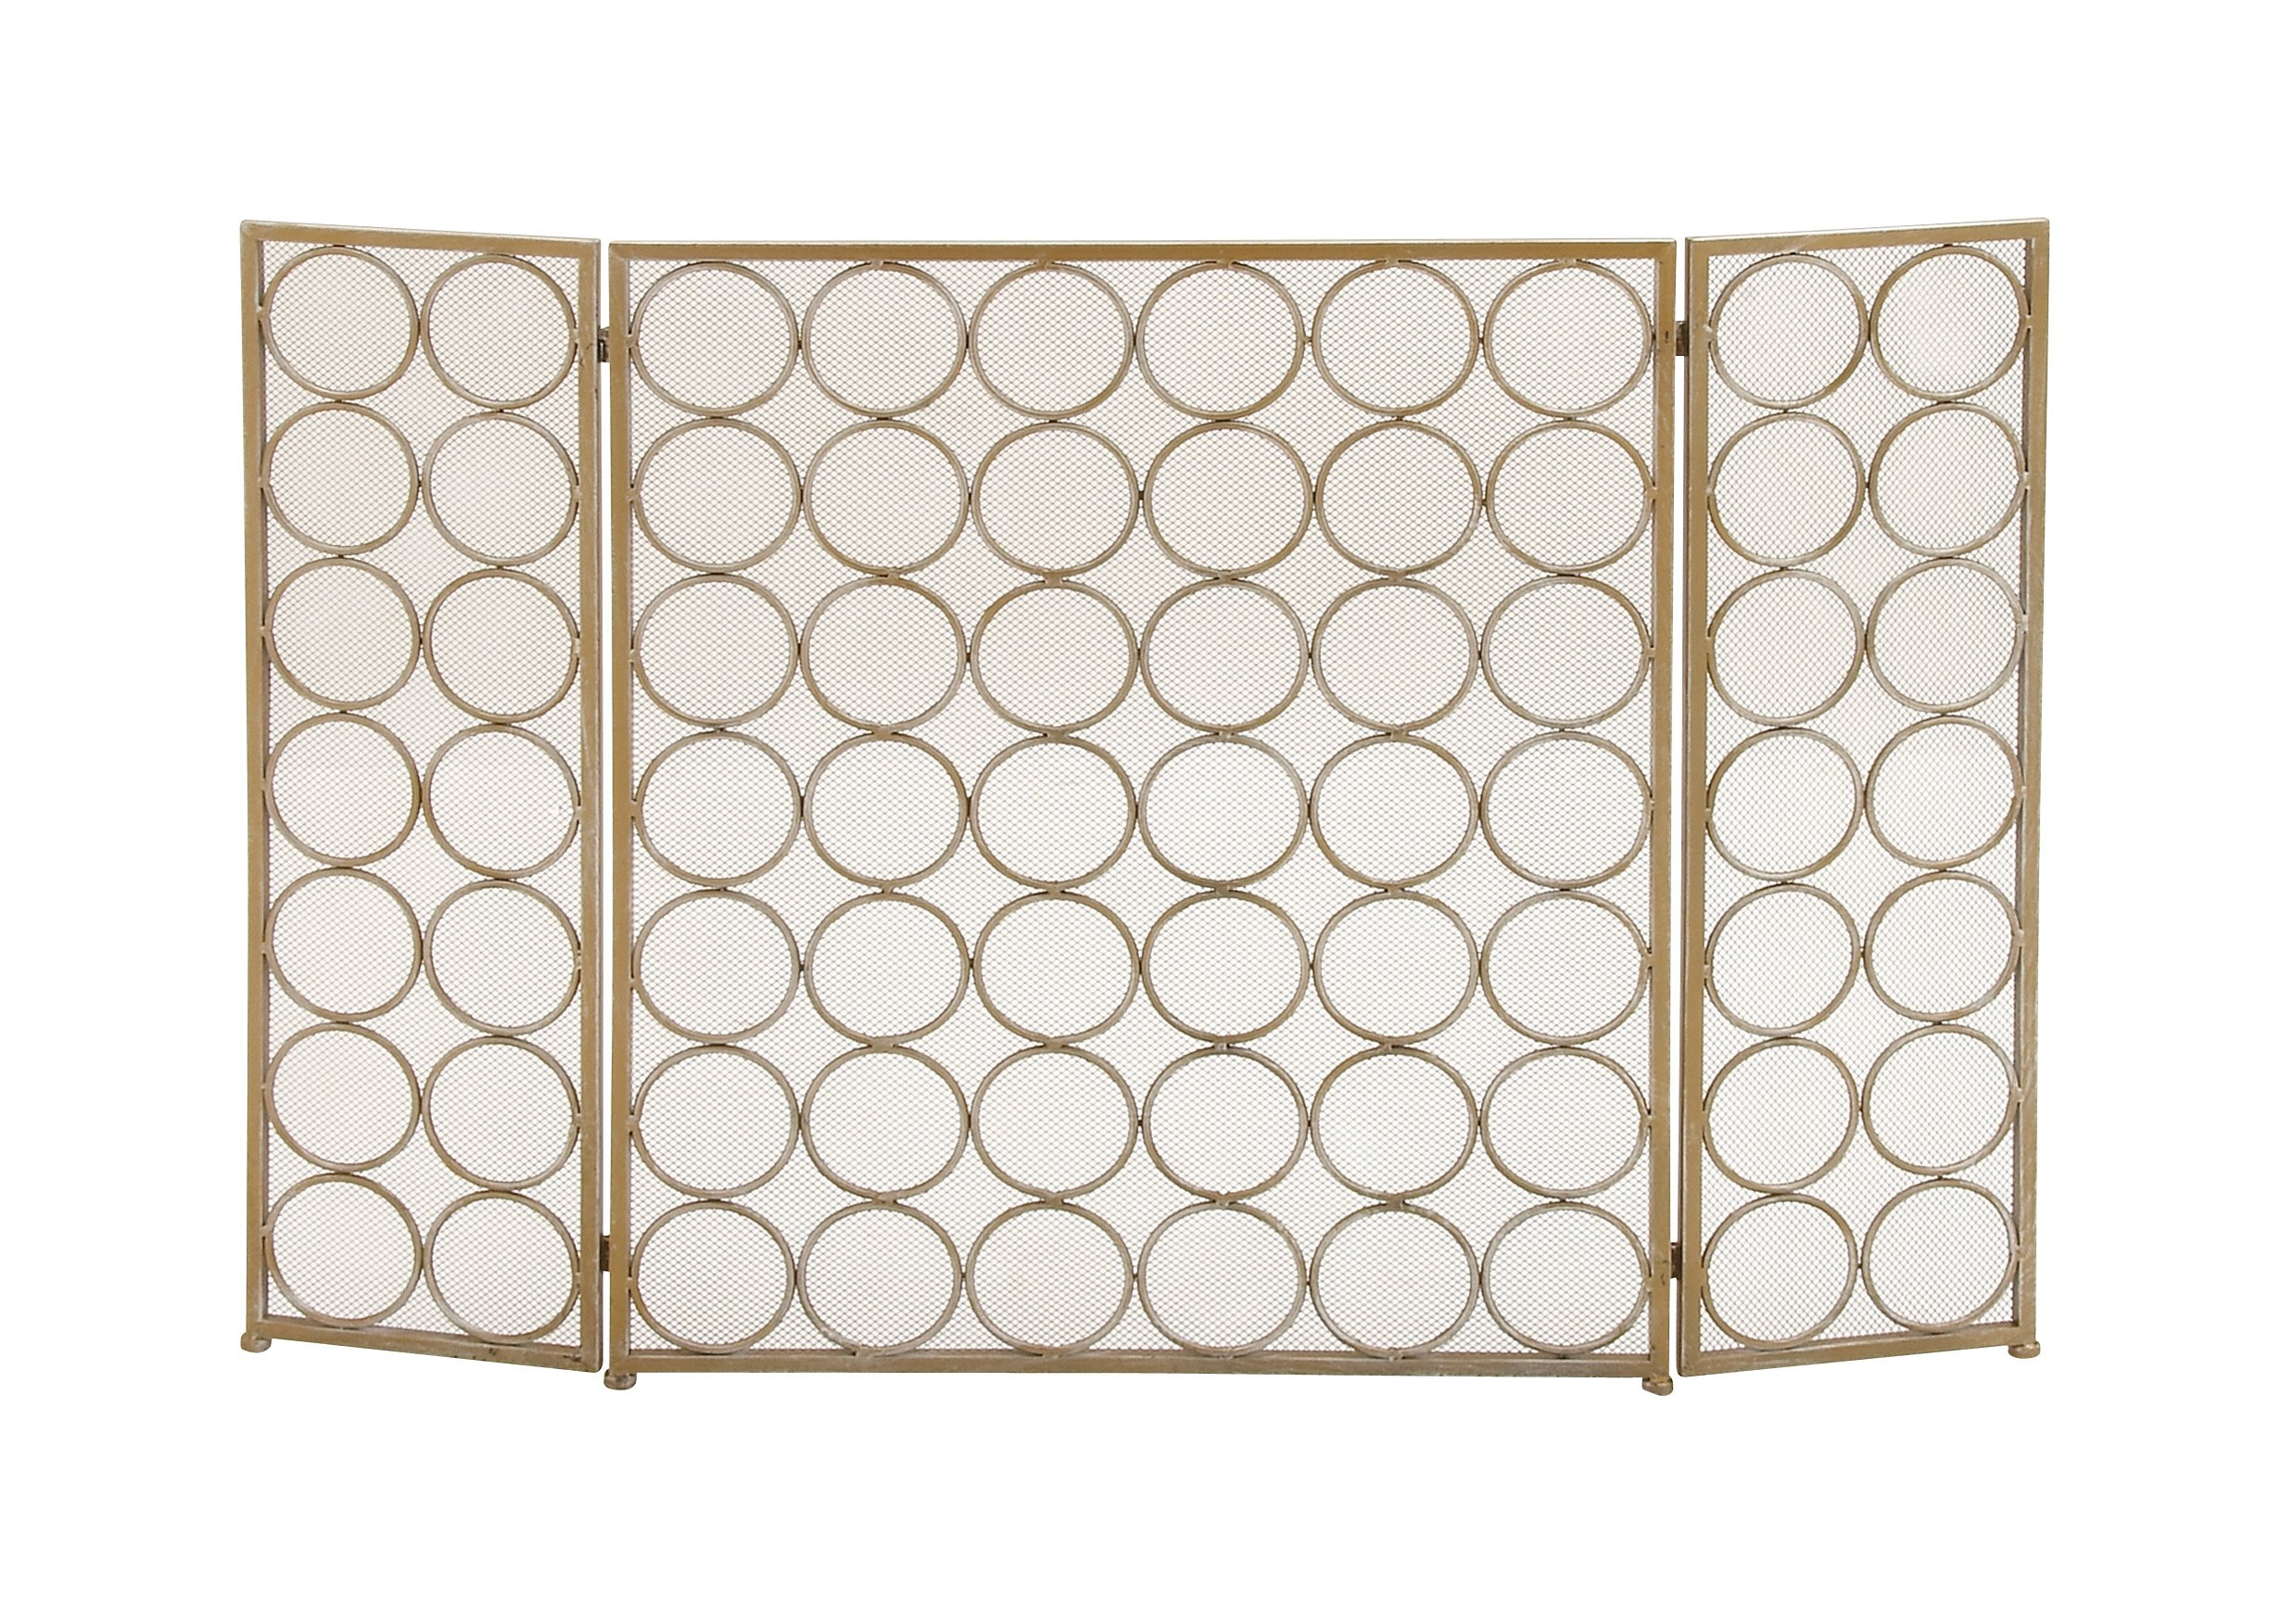 Deco 79 Modern 3-Panel Metal Fire Screen, 32'' H x 47'' L, Textured Gold Finish by Deco 79